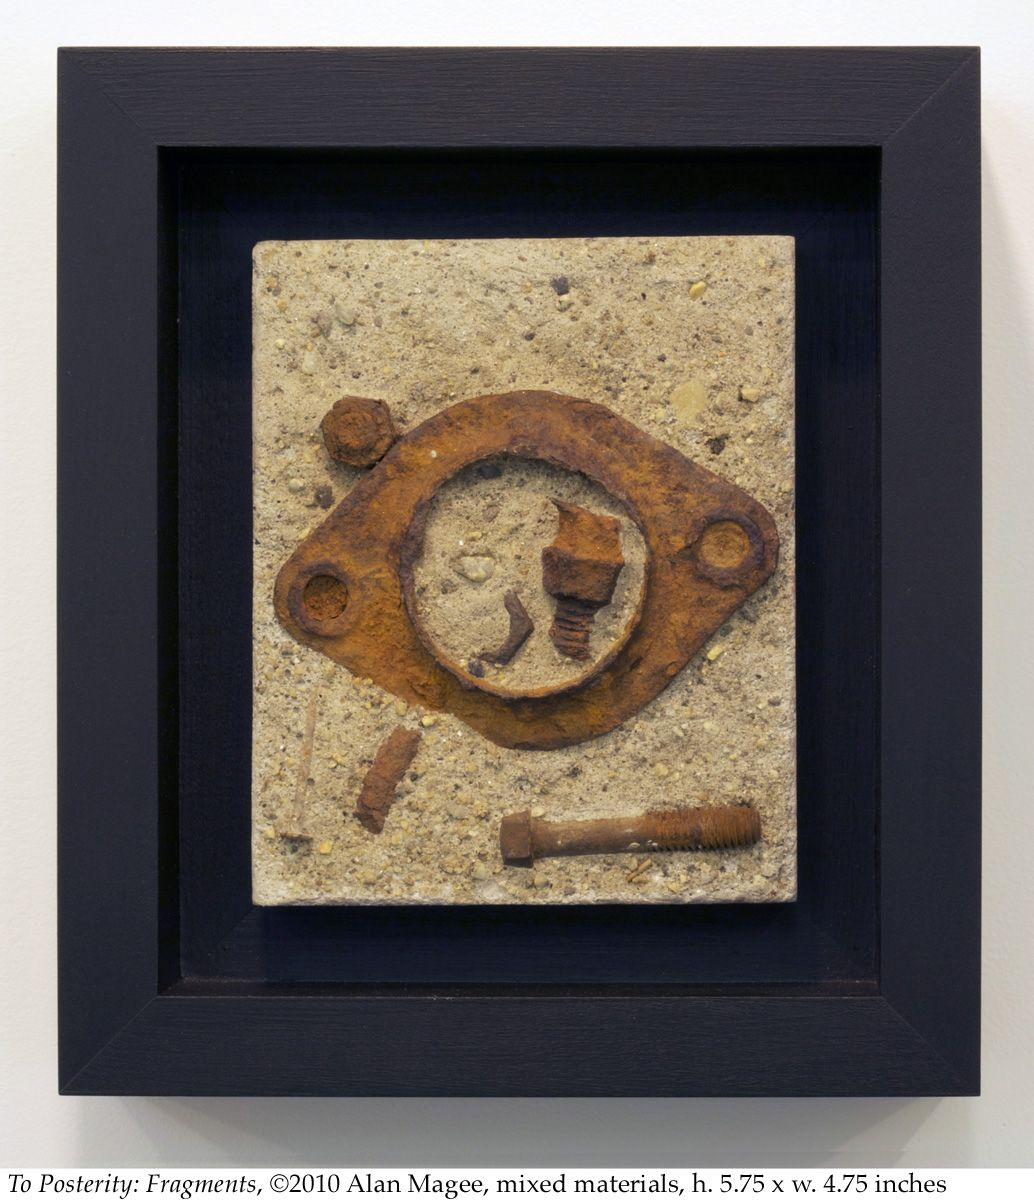 Alan Magee, To Posterity: Fragments, 2010, mixed media, 5.75 x 4.75 inches